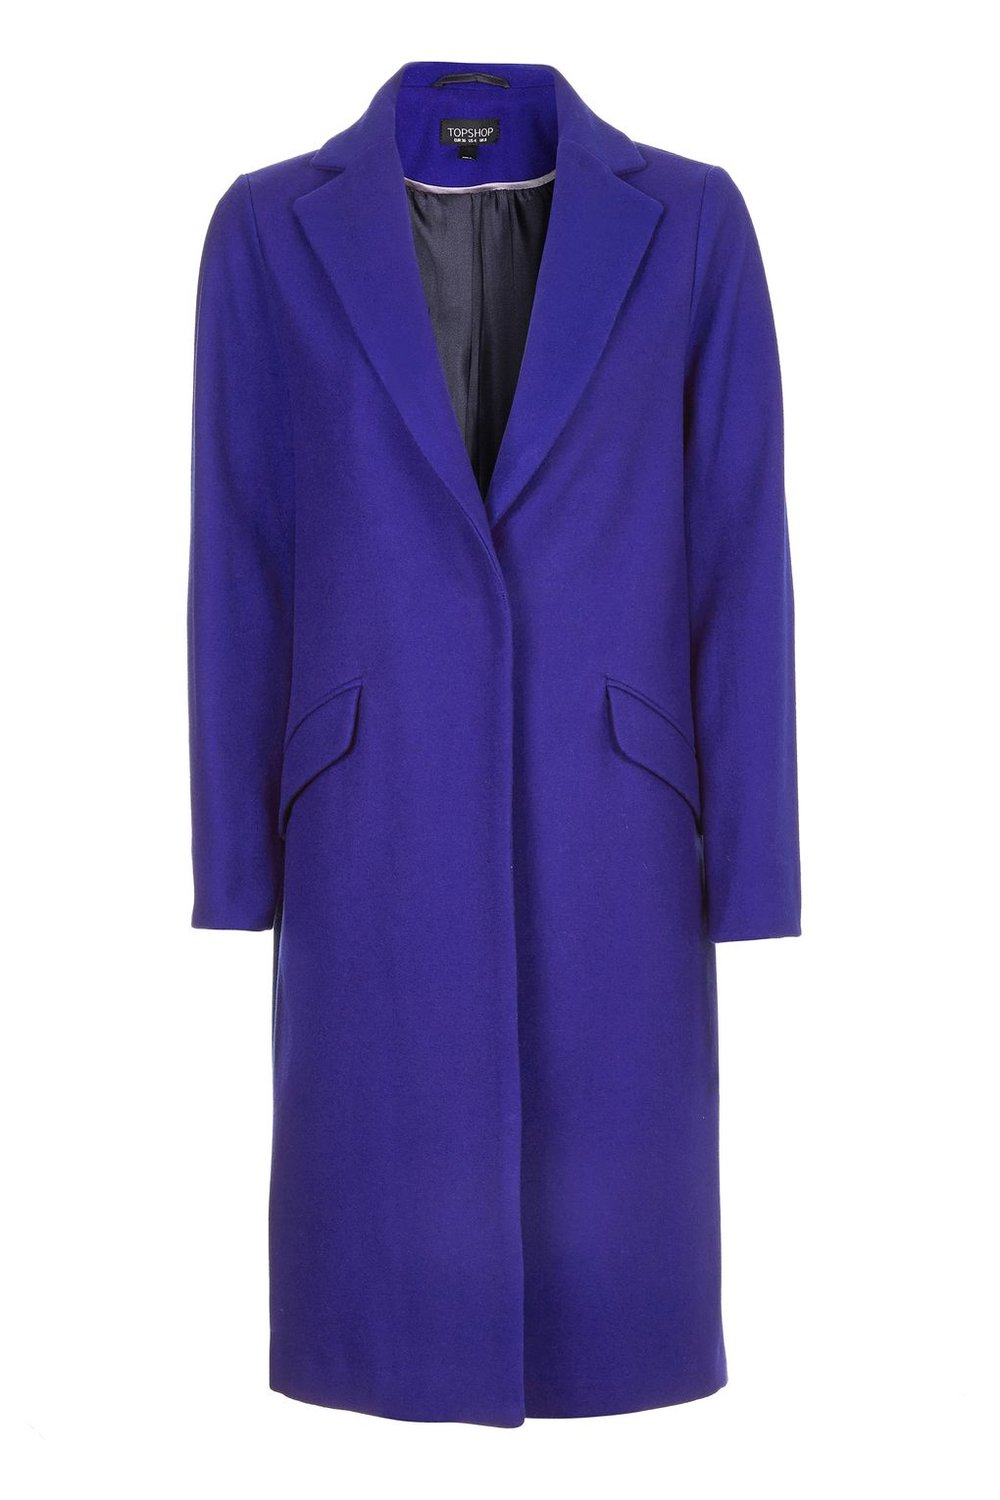 TOPSHOP PURPLE FLURO WOOL COAT